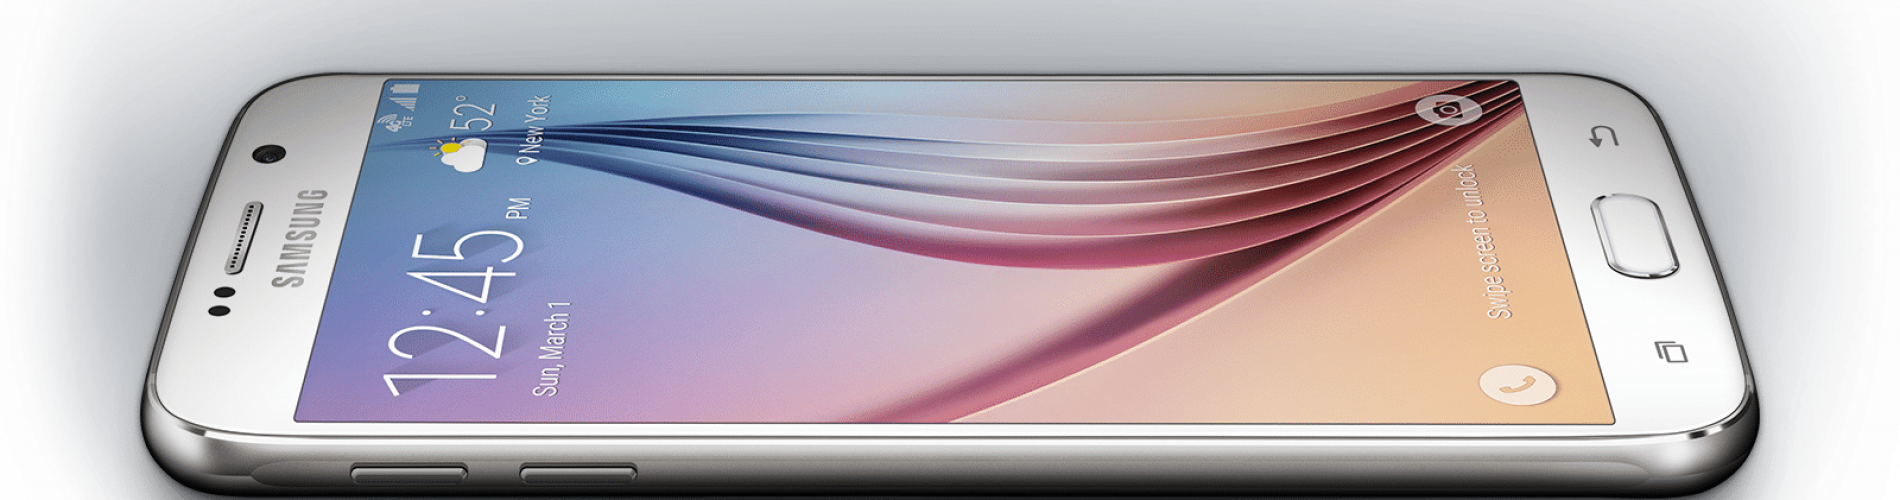 Samsung might ship three Galaxy S7 variants, all with different processors